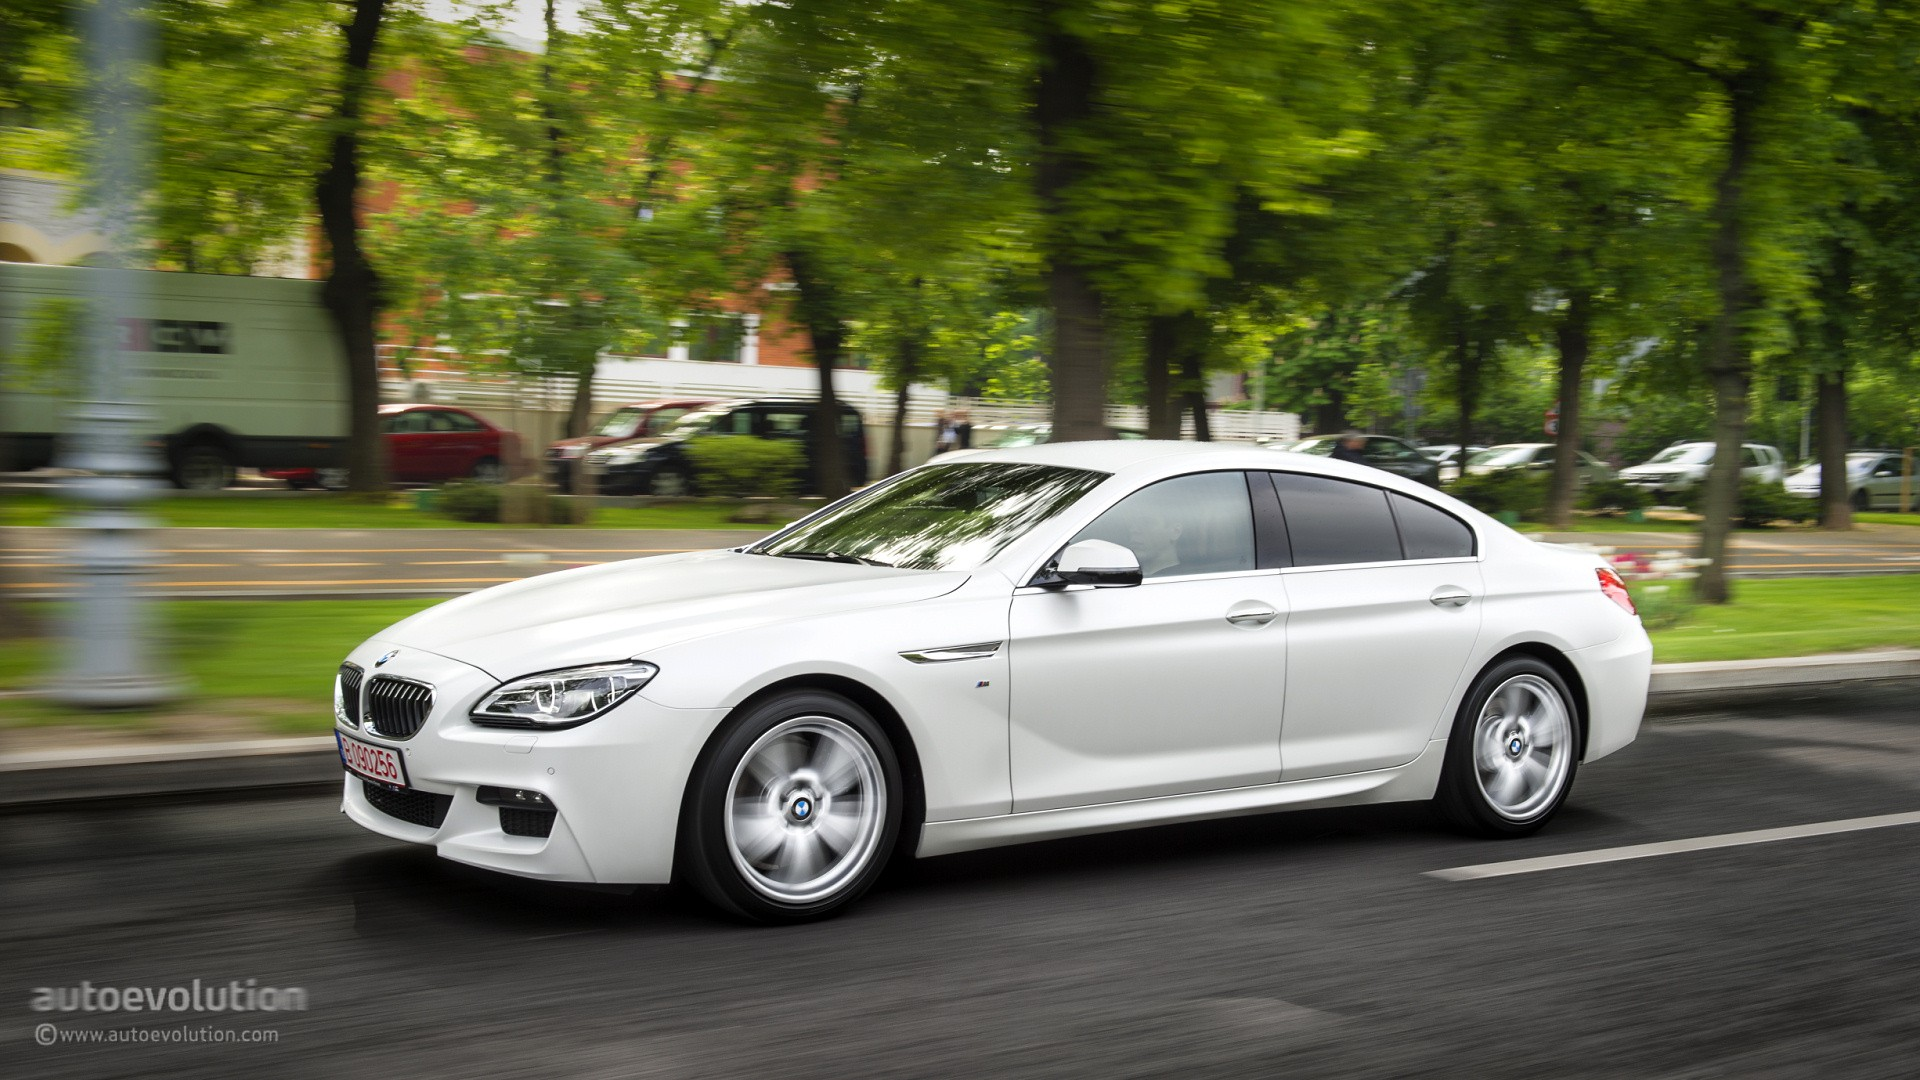 2016 Bmw 6 Series Gran Coupe #3